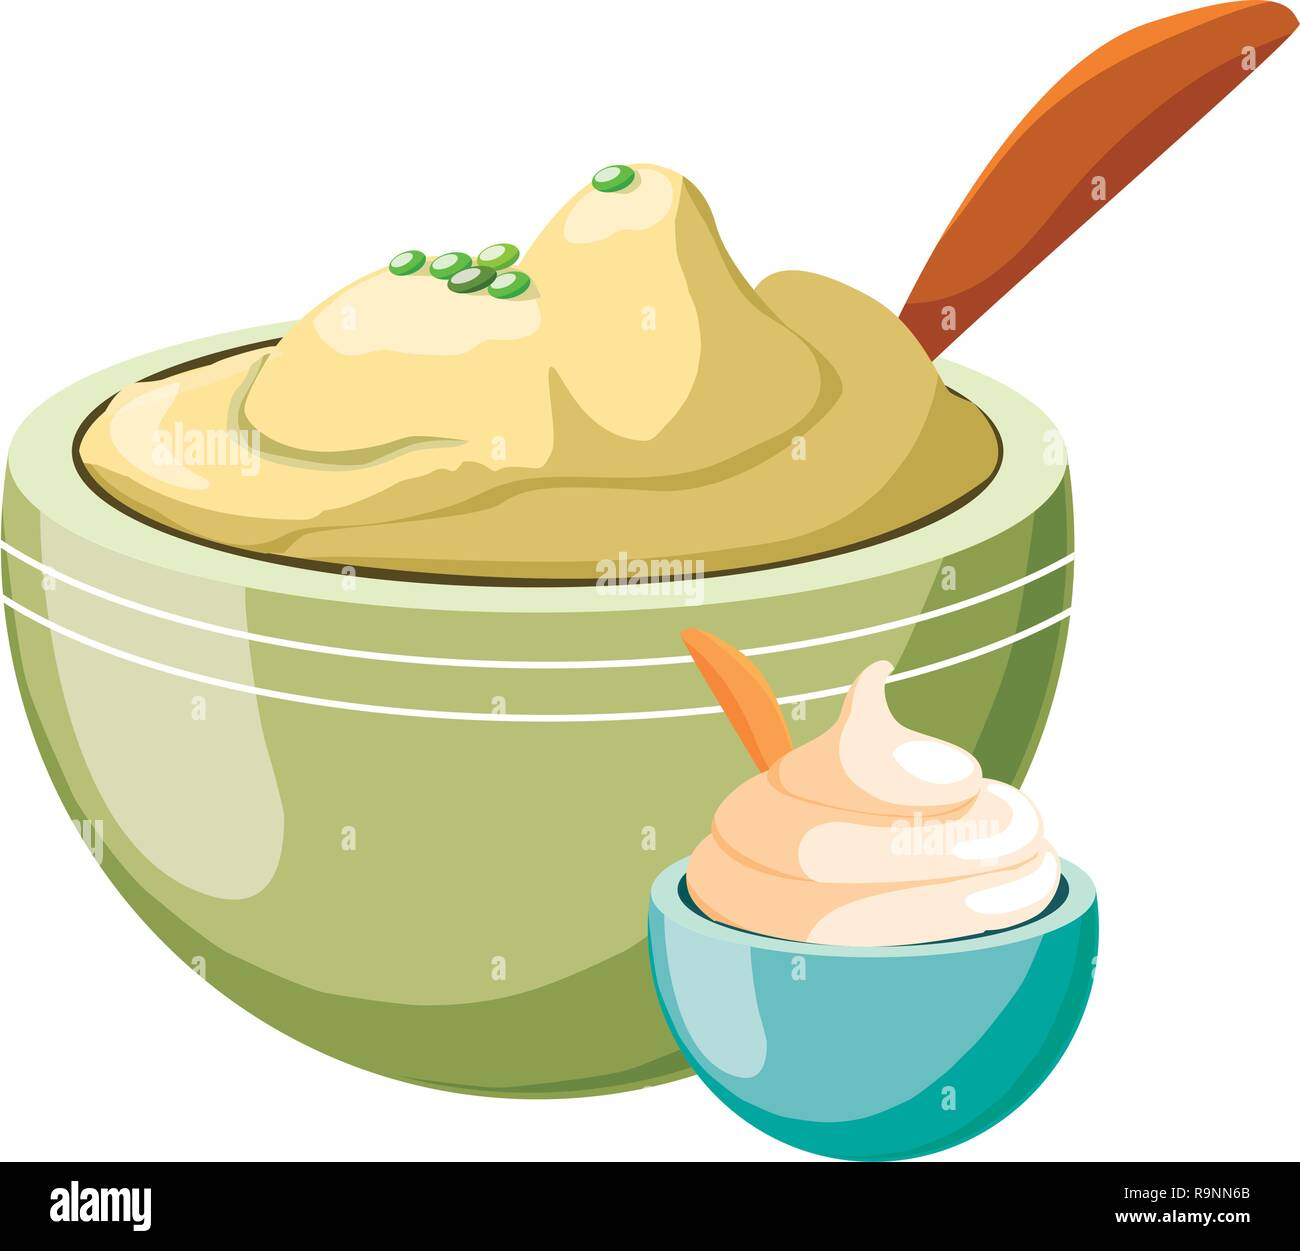 mashed potatoes over white background, colorful design, vector illustration - Stock Vector